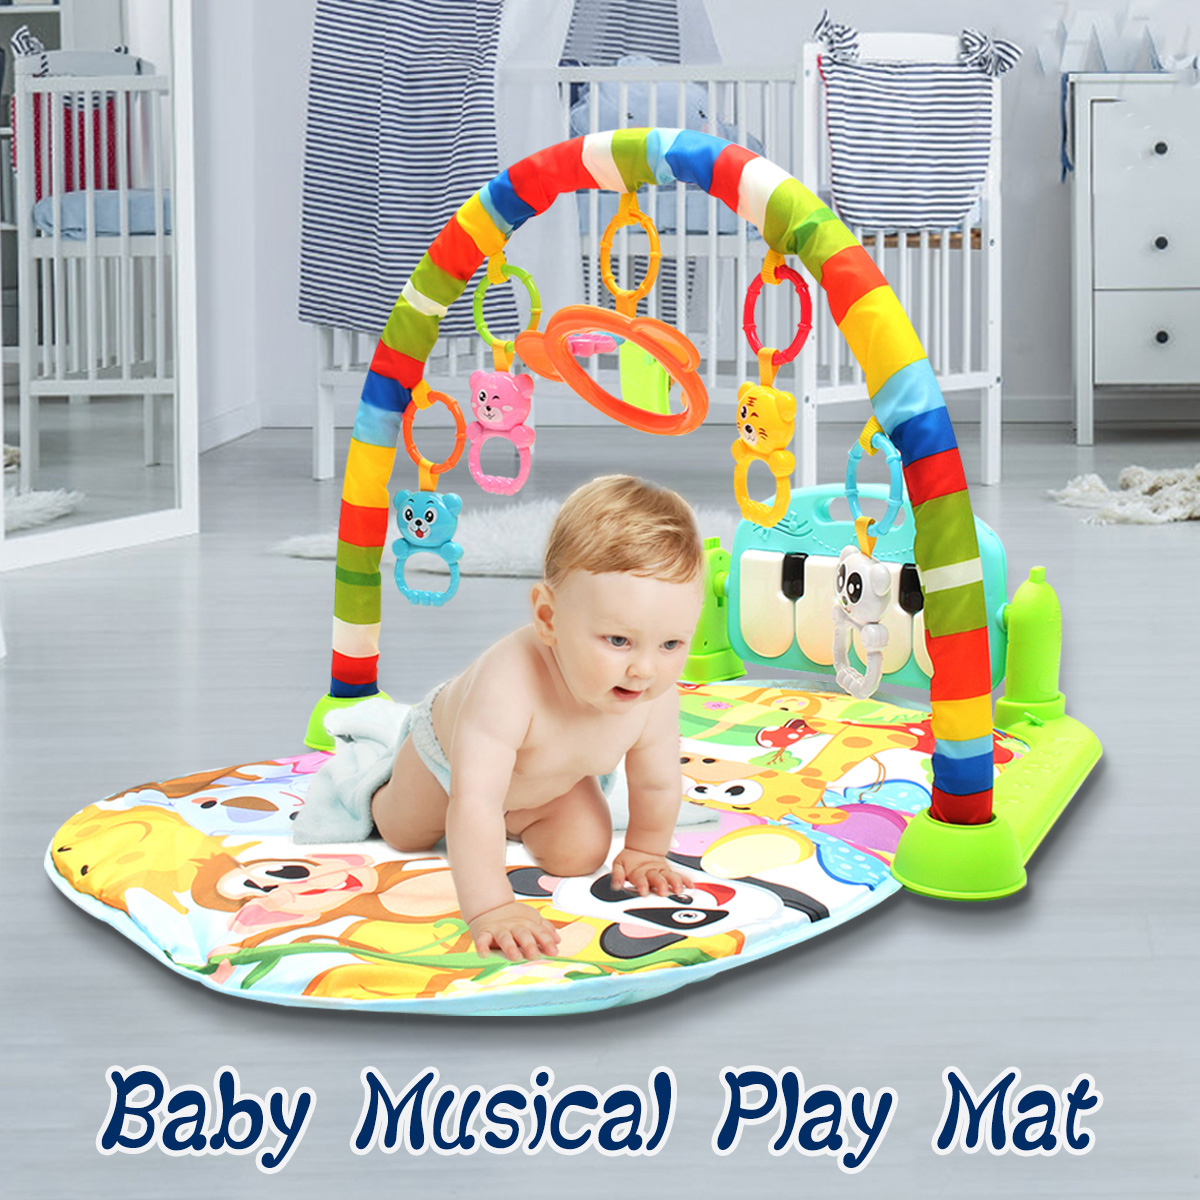 How To Play Newborn On Piano Newborn Infant Baby Play Mat Gym Musical Piano Play Mat Kids Activity Carpet